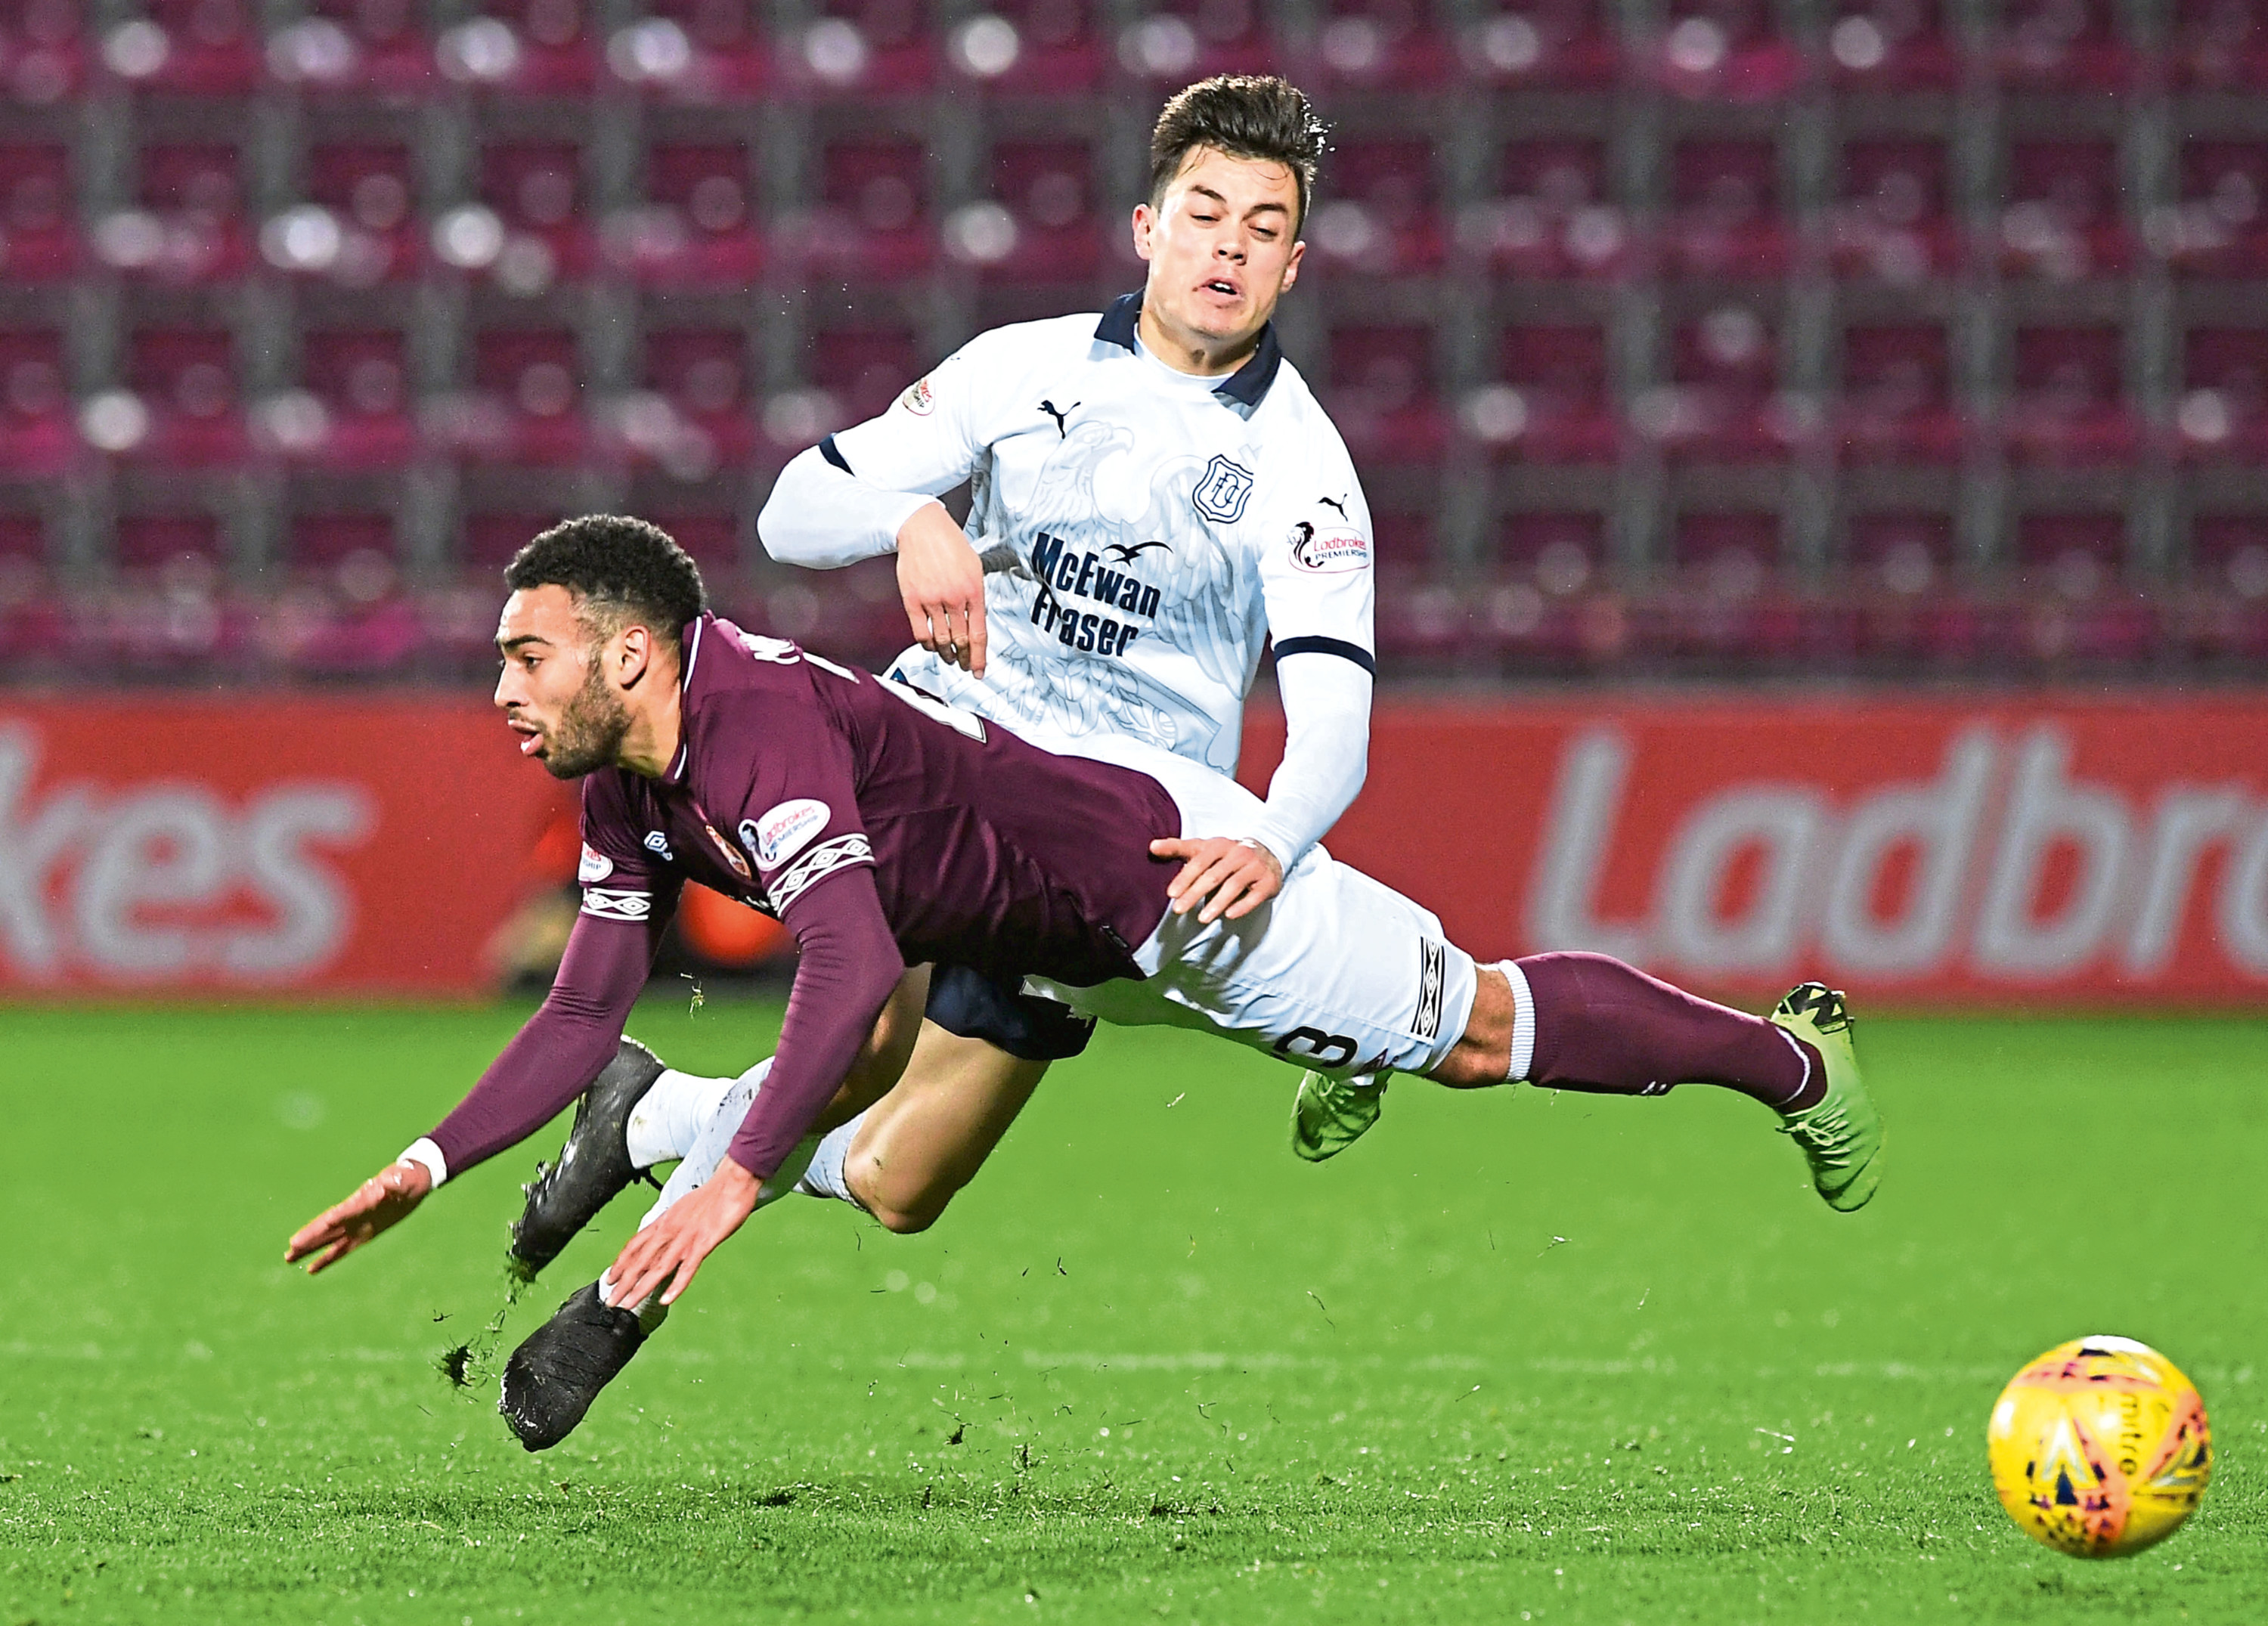 Jesse Curran flies into a tackle with Hearts' Jake Mulraney which Dundee boss Jim McIntyre feels epitomised his side's display in a 2-1 win last night